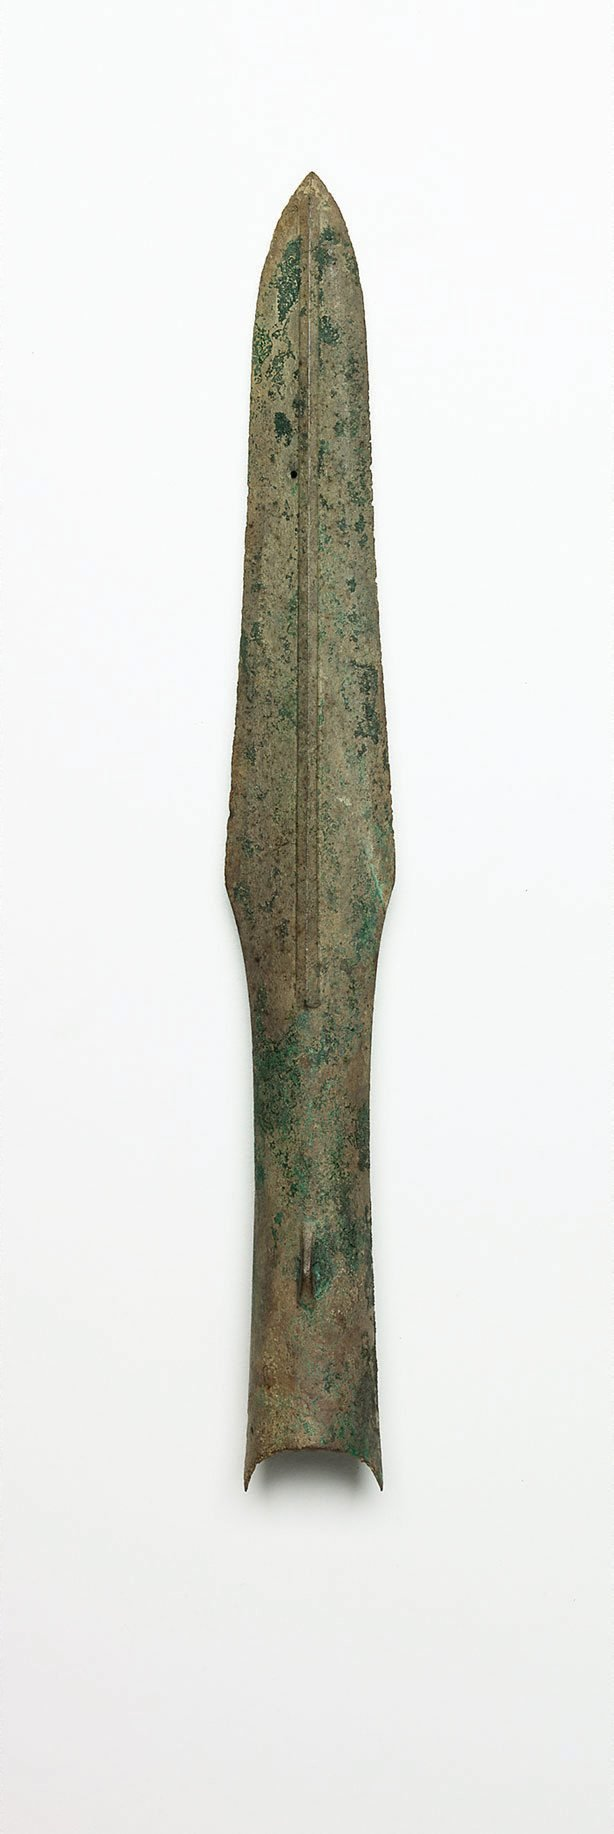 An image of Spearhead (mao)